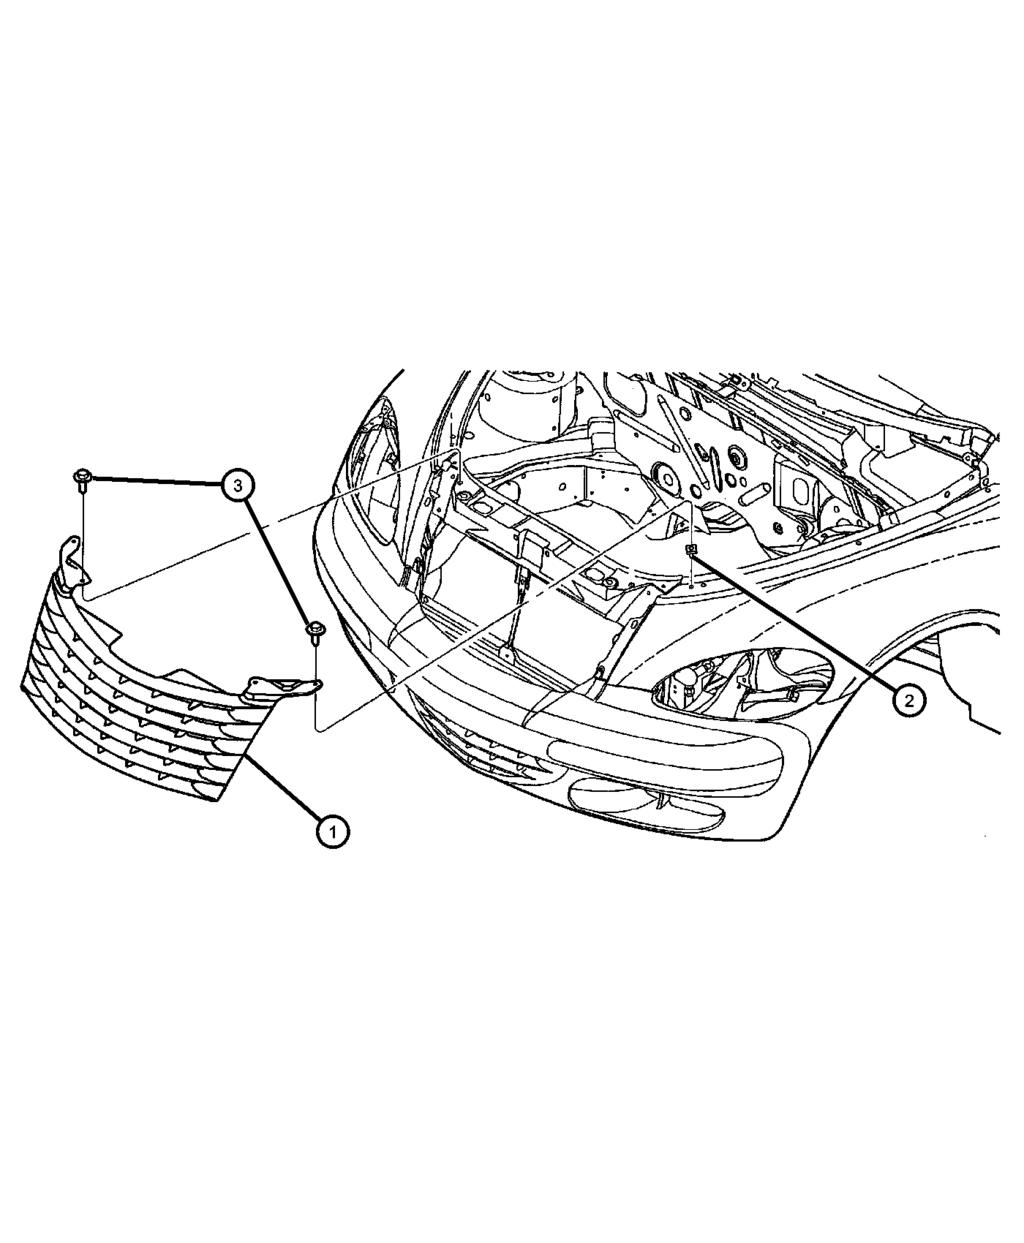 Grille and Related Parts Grille and Related Parts Figure 7-710 1 GRILLE, Radiator 0RH78DX8AE 1 [X8] 0RH78SW1AE 1 [W1] 0RH78TTKAE 1 [TK] 0RH78VM- 1 [MT] TAE 0RH78WB7AE 1 [B7] 0RH78WE- 1 [EL] LAE